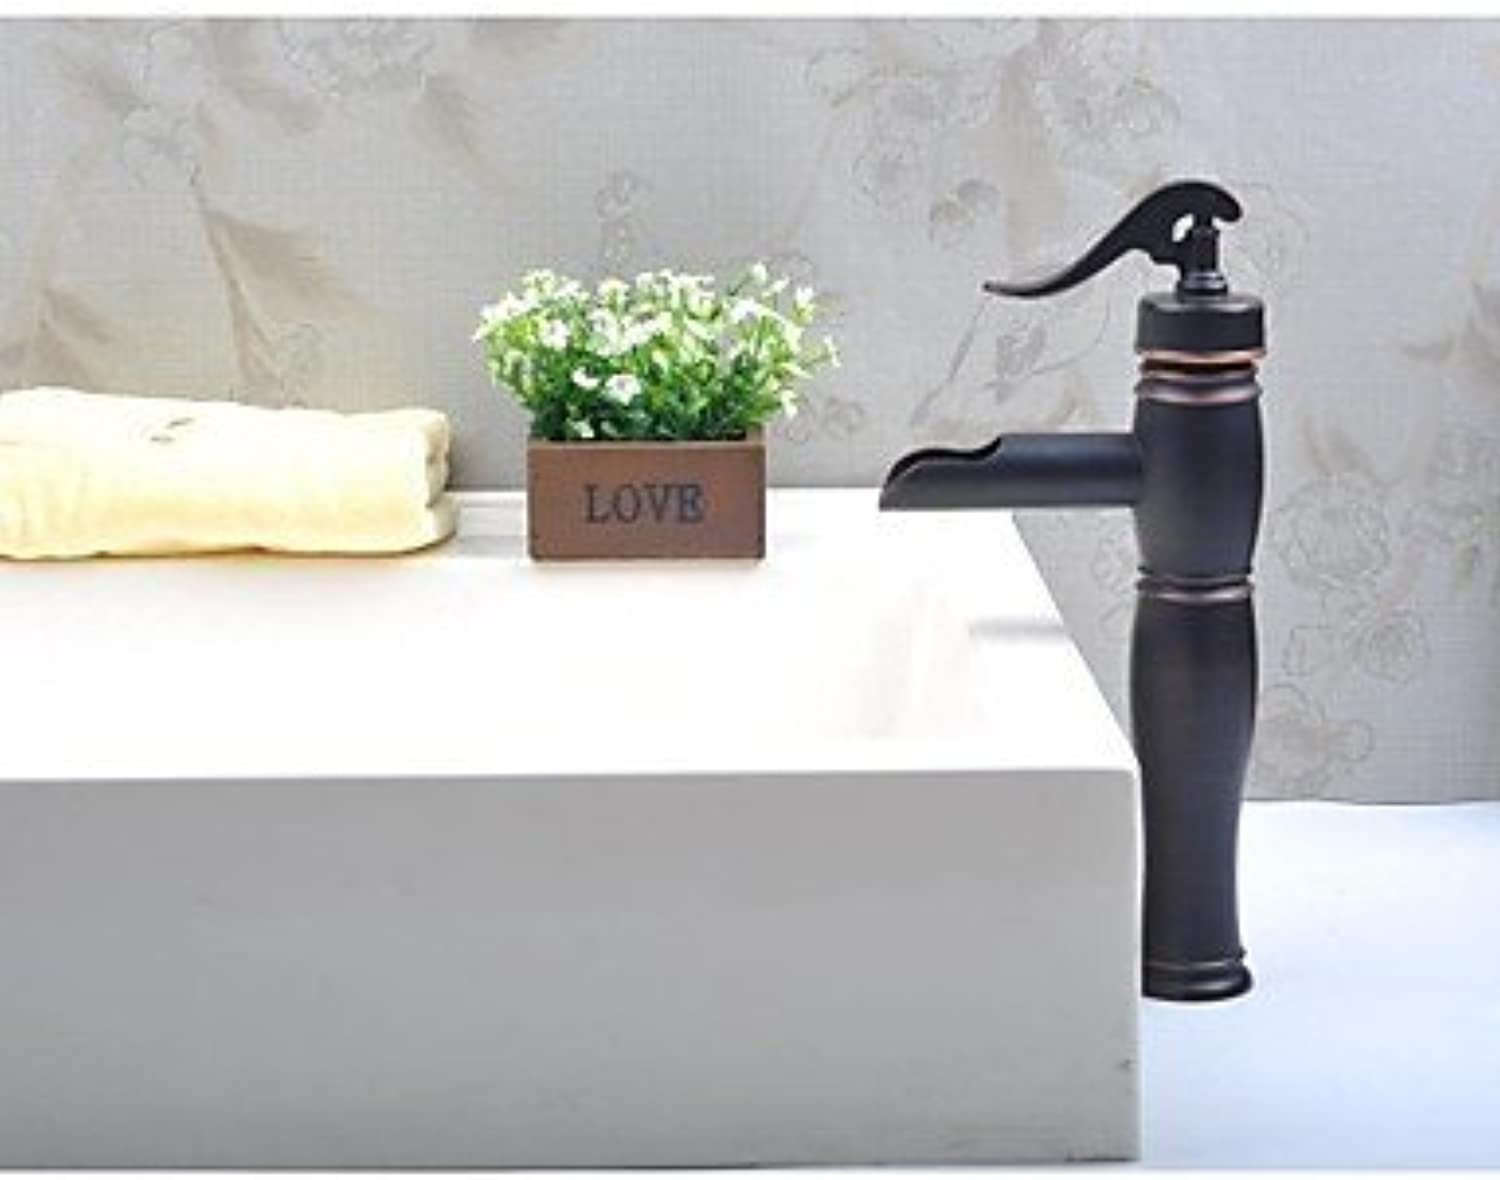 SEBAS HOME Basin Tap Waterfall Brass Oil-rubbed Bronze Bathroom Faucet Basin Mixer Tap